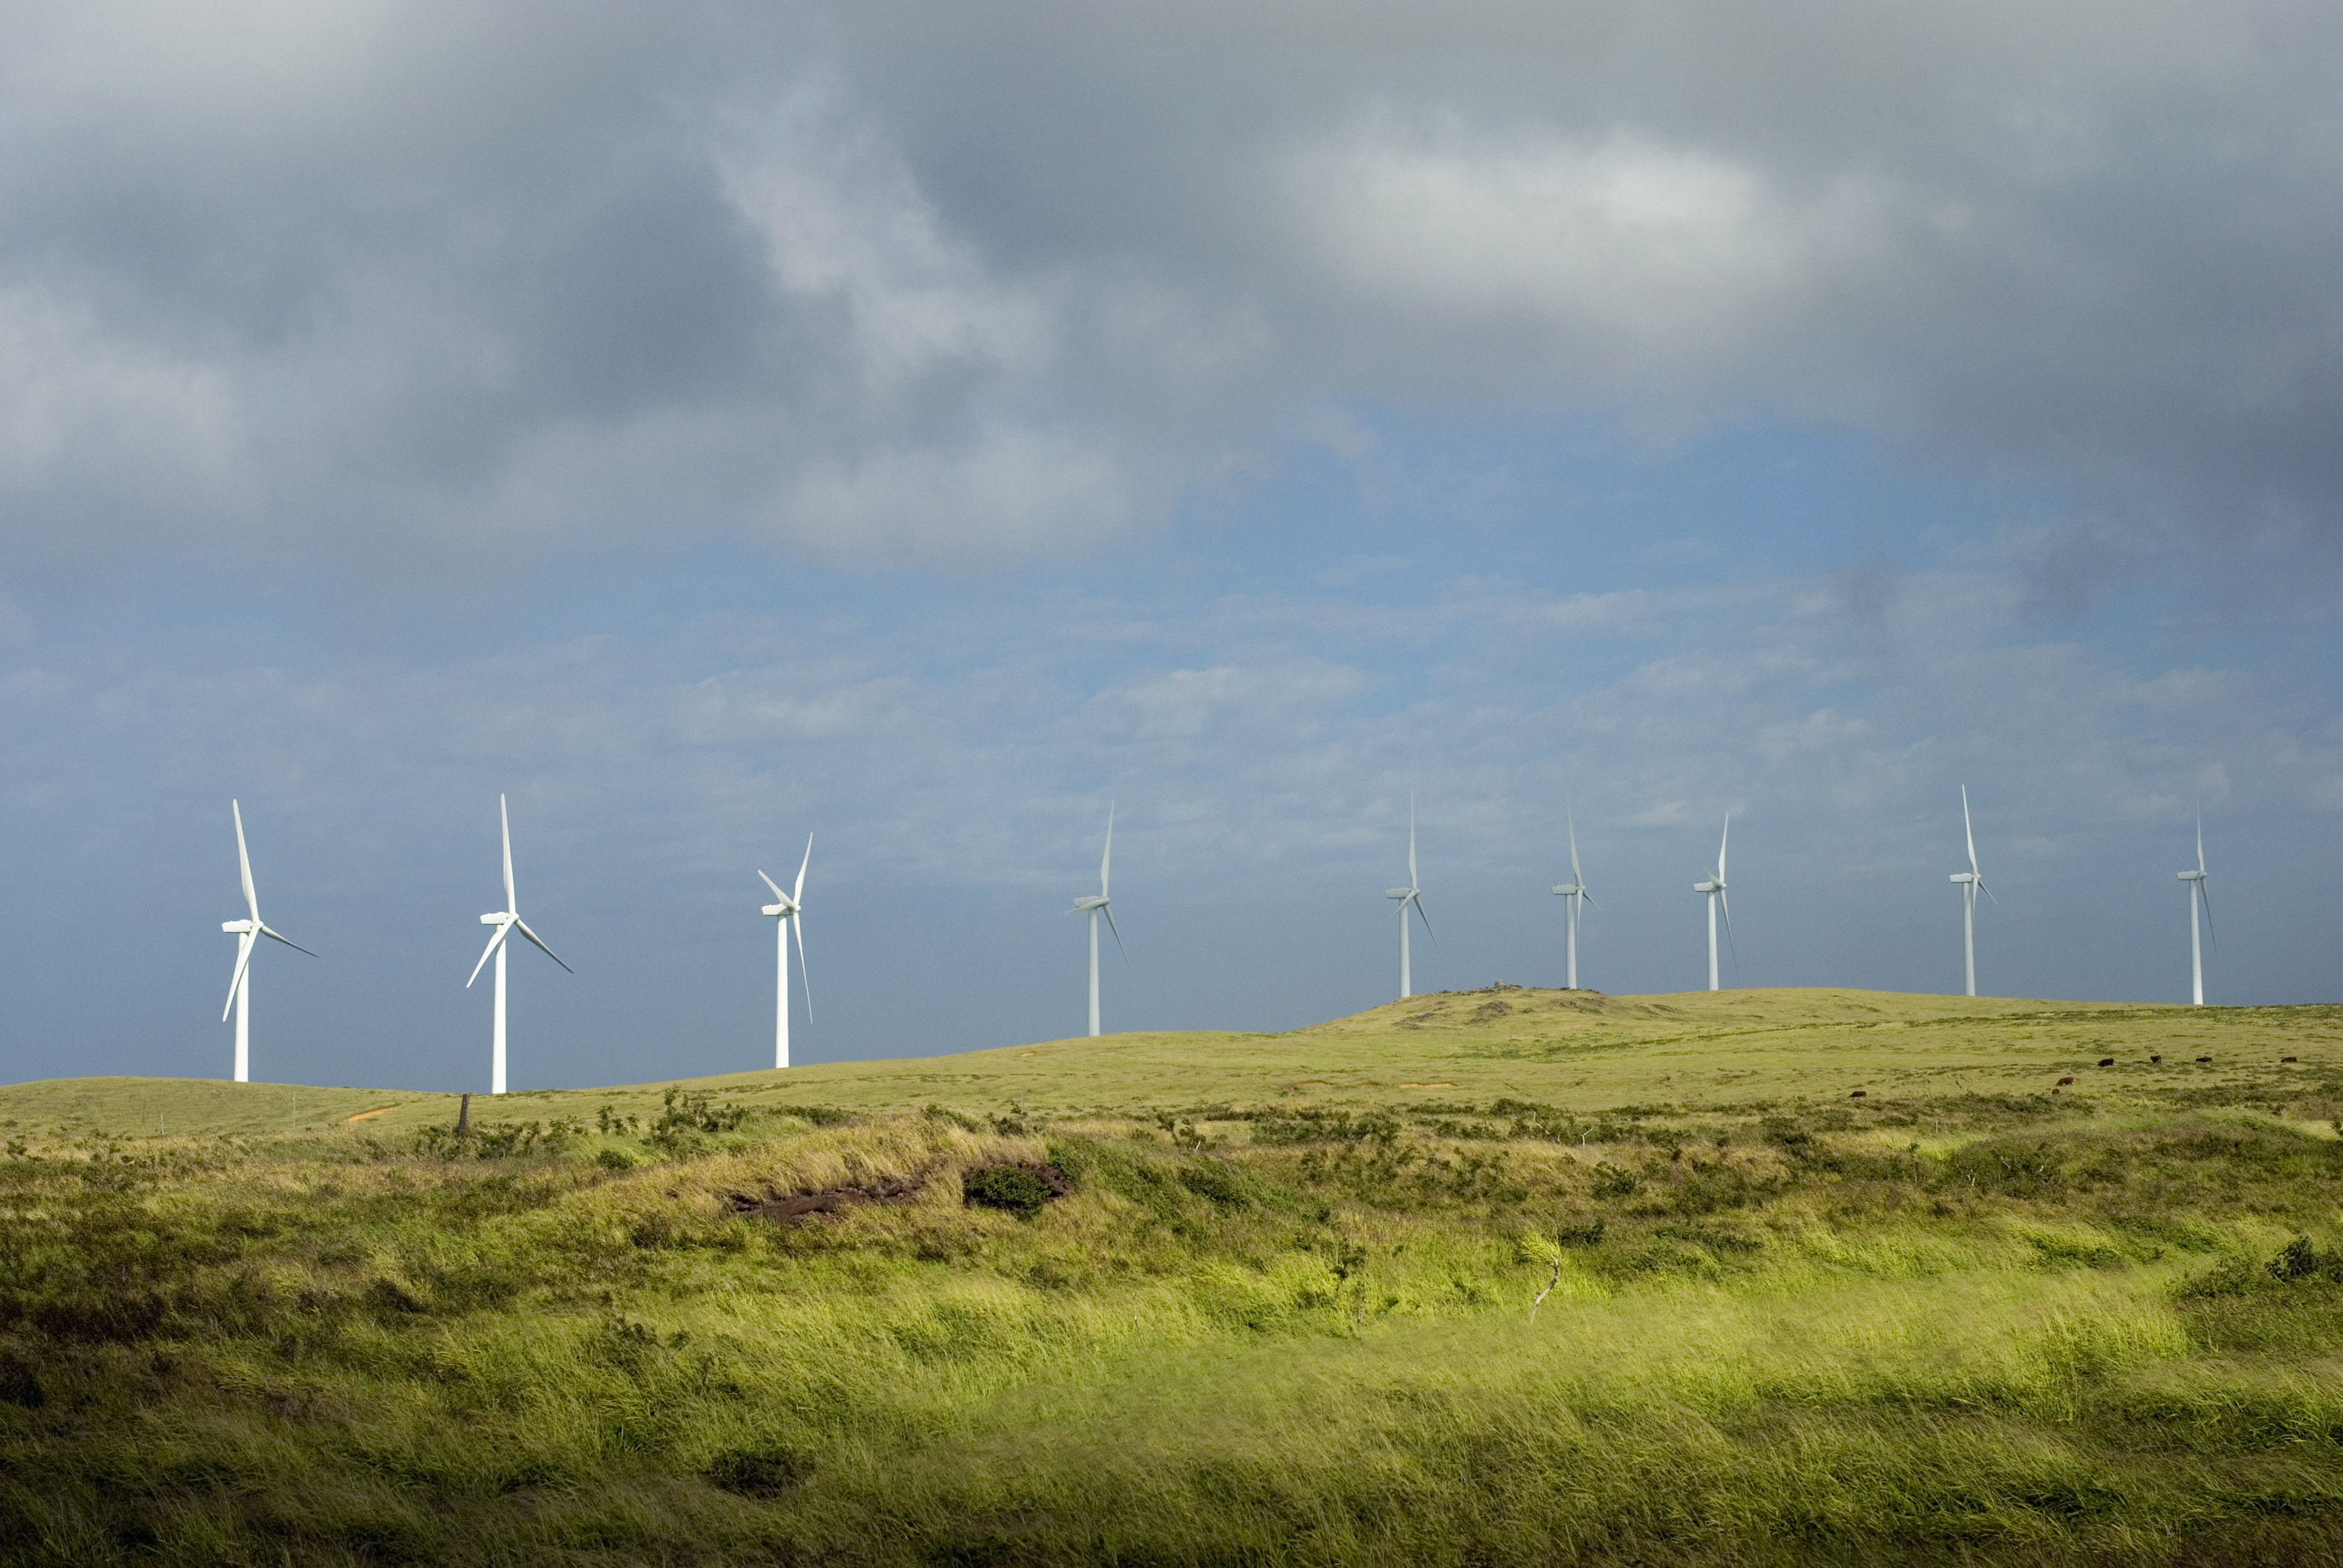 a line of wind power generators on a hilltop